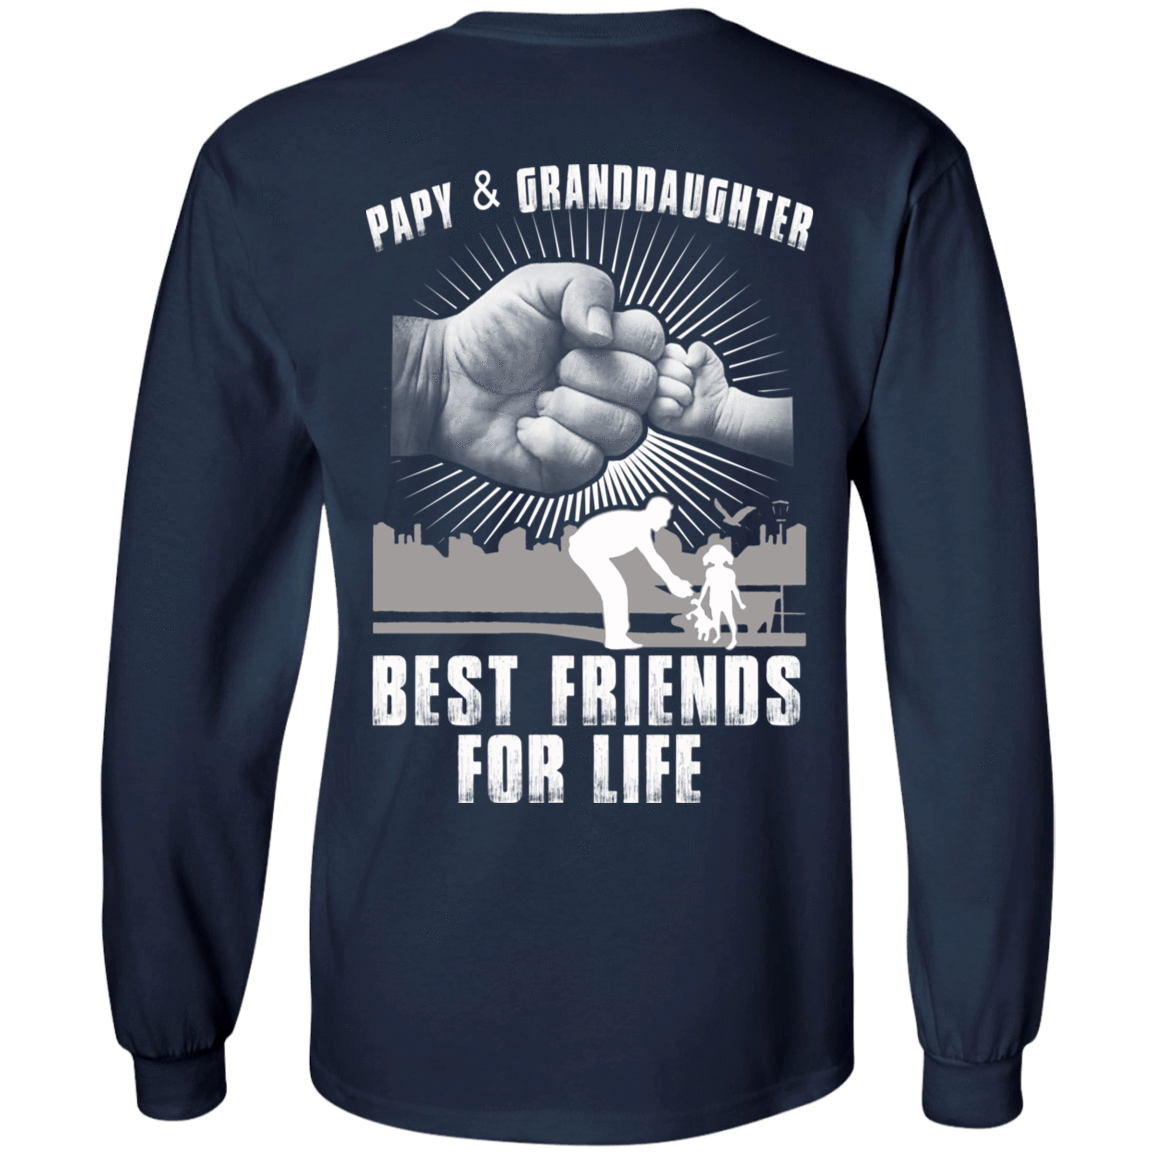 Papy And Granddaughter Best Friends For Life 30-184-71996228-331 - Tee Ript